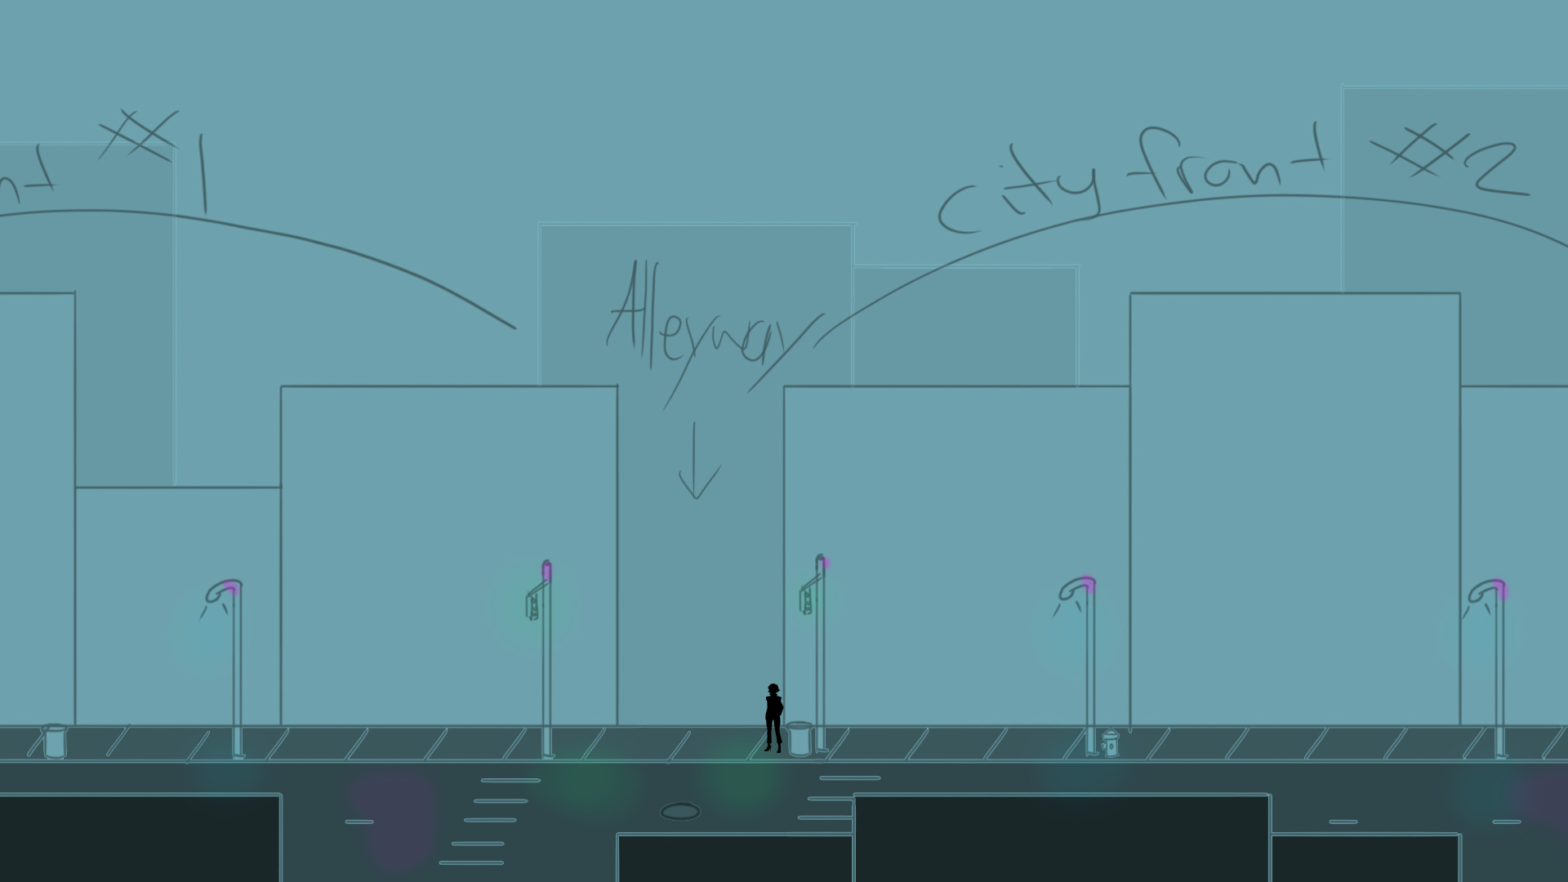 Environment Concept 3 : Street / City Fronts